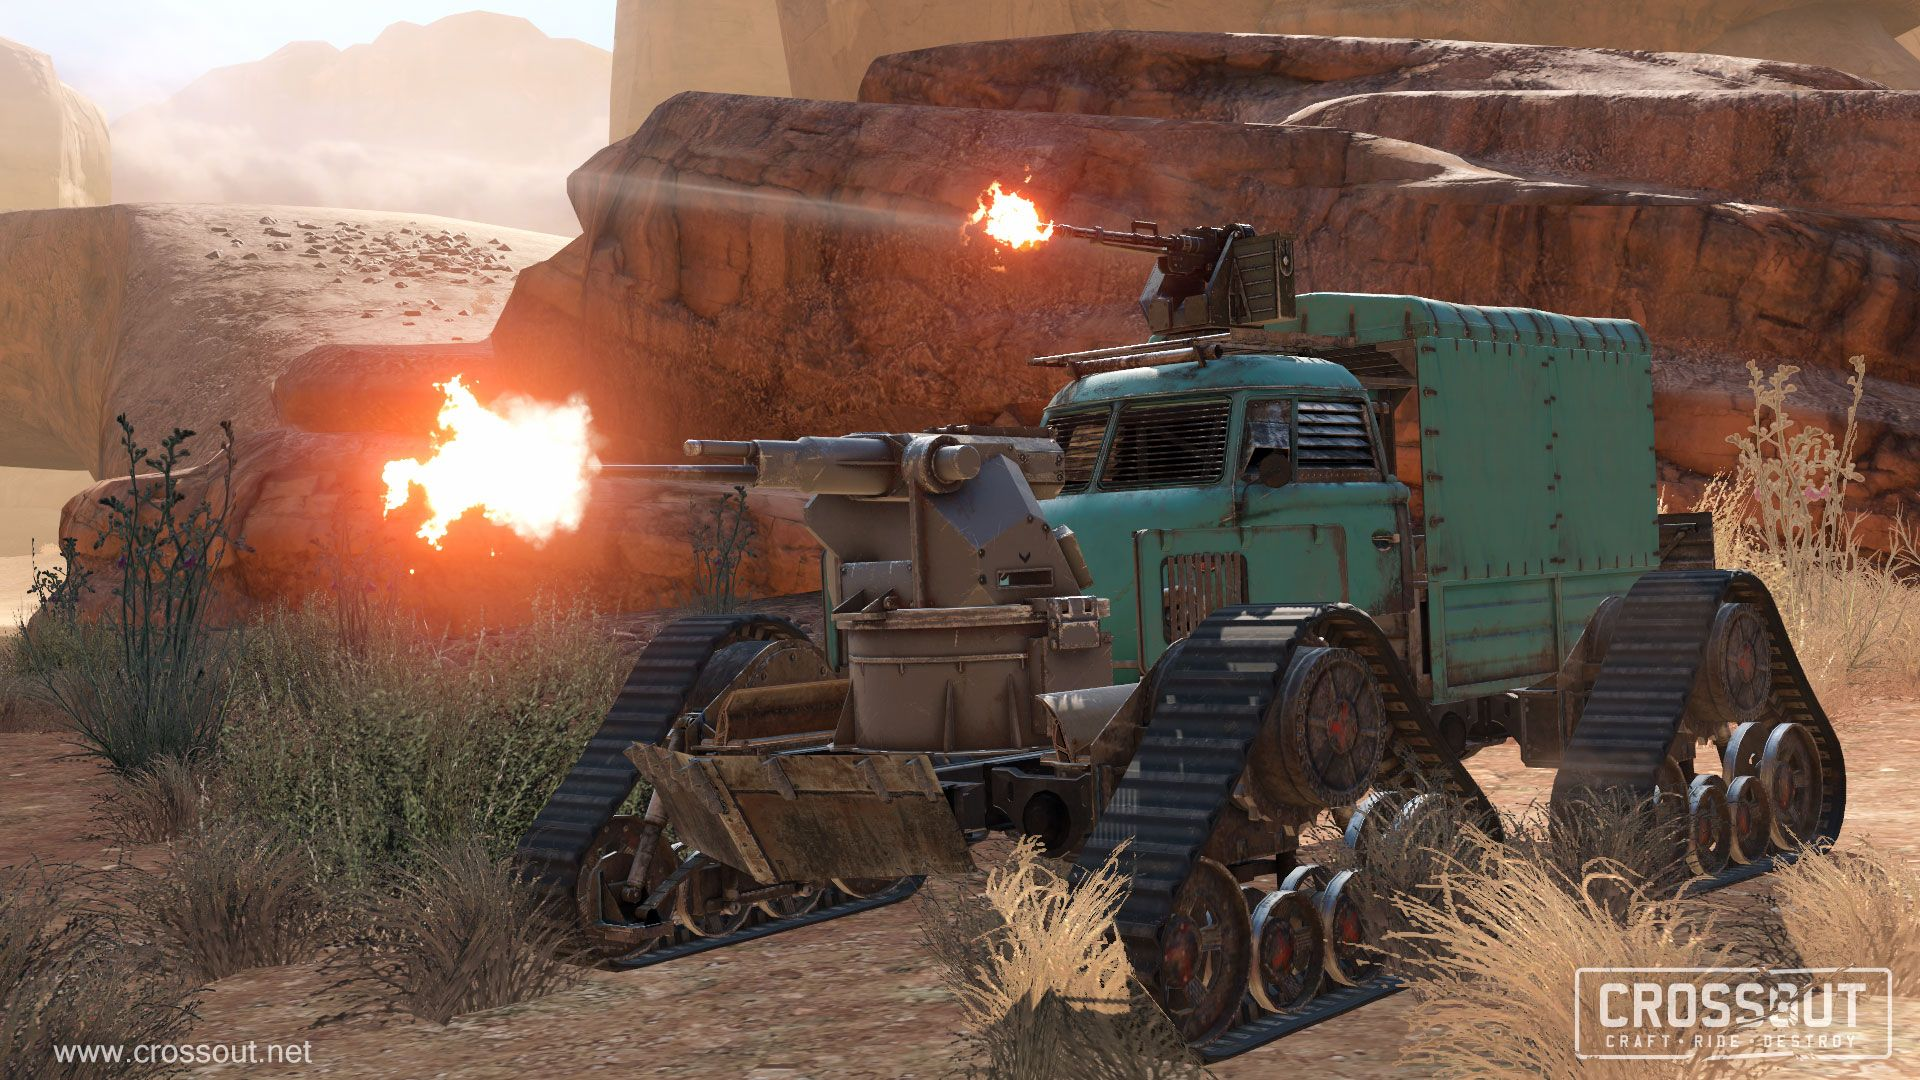 STEAM TÉLÉCHARGER CROSSOUT SUR